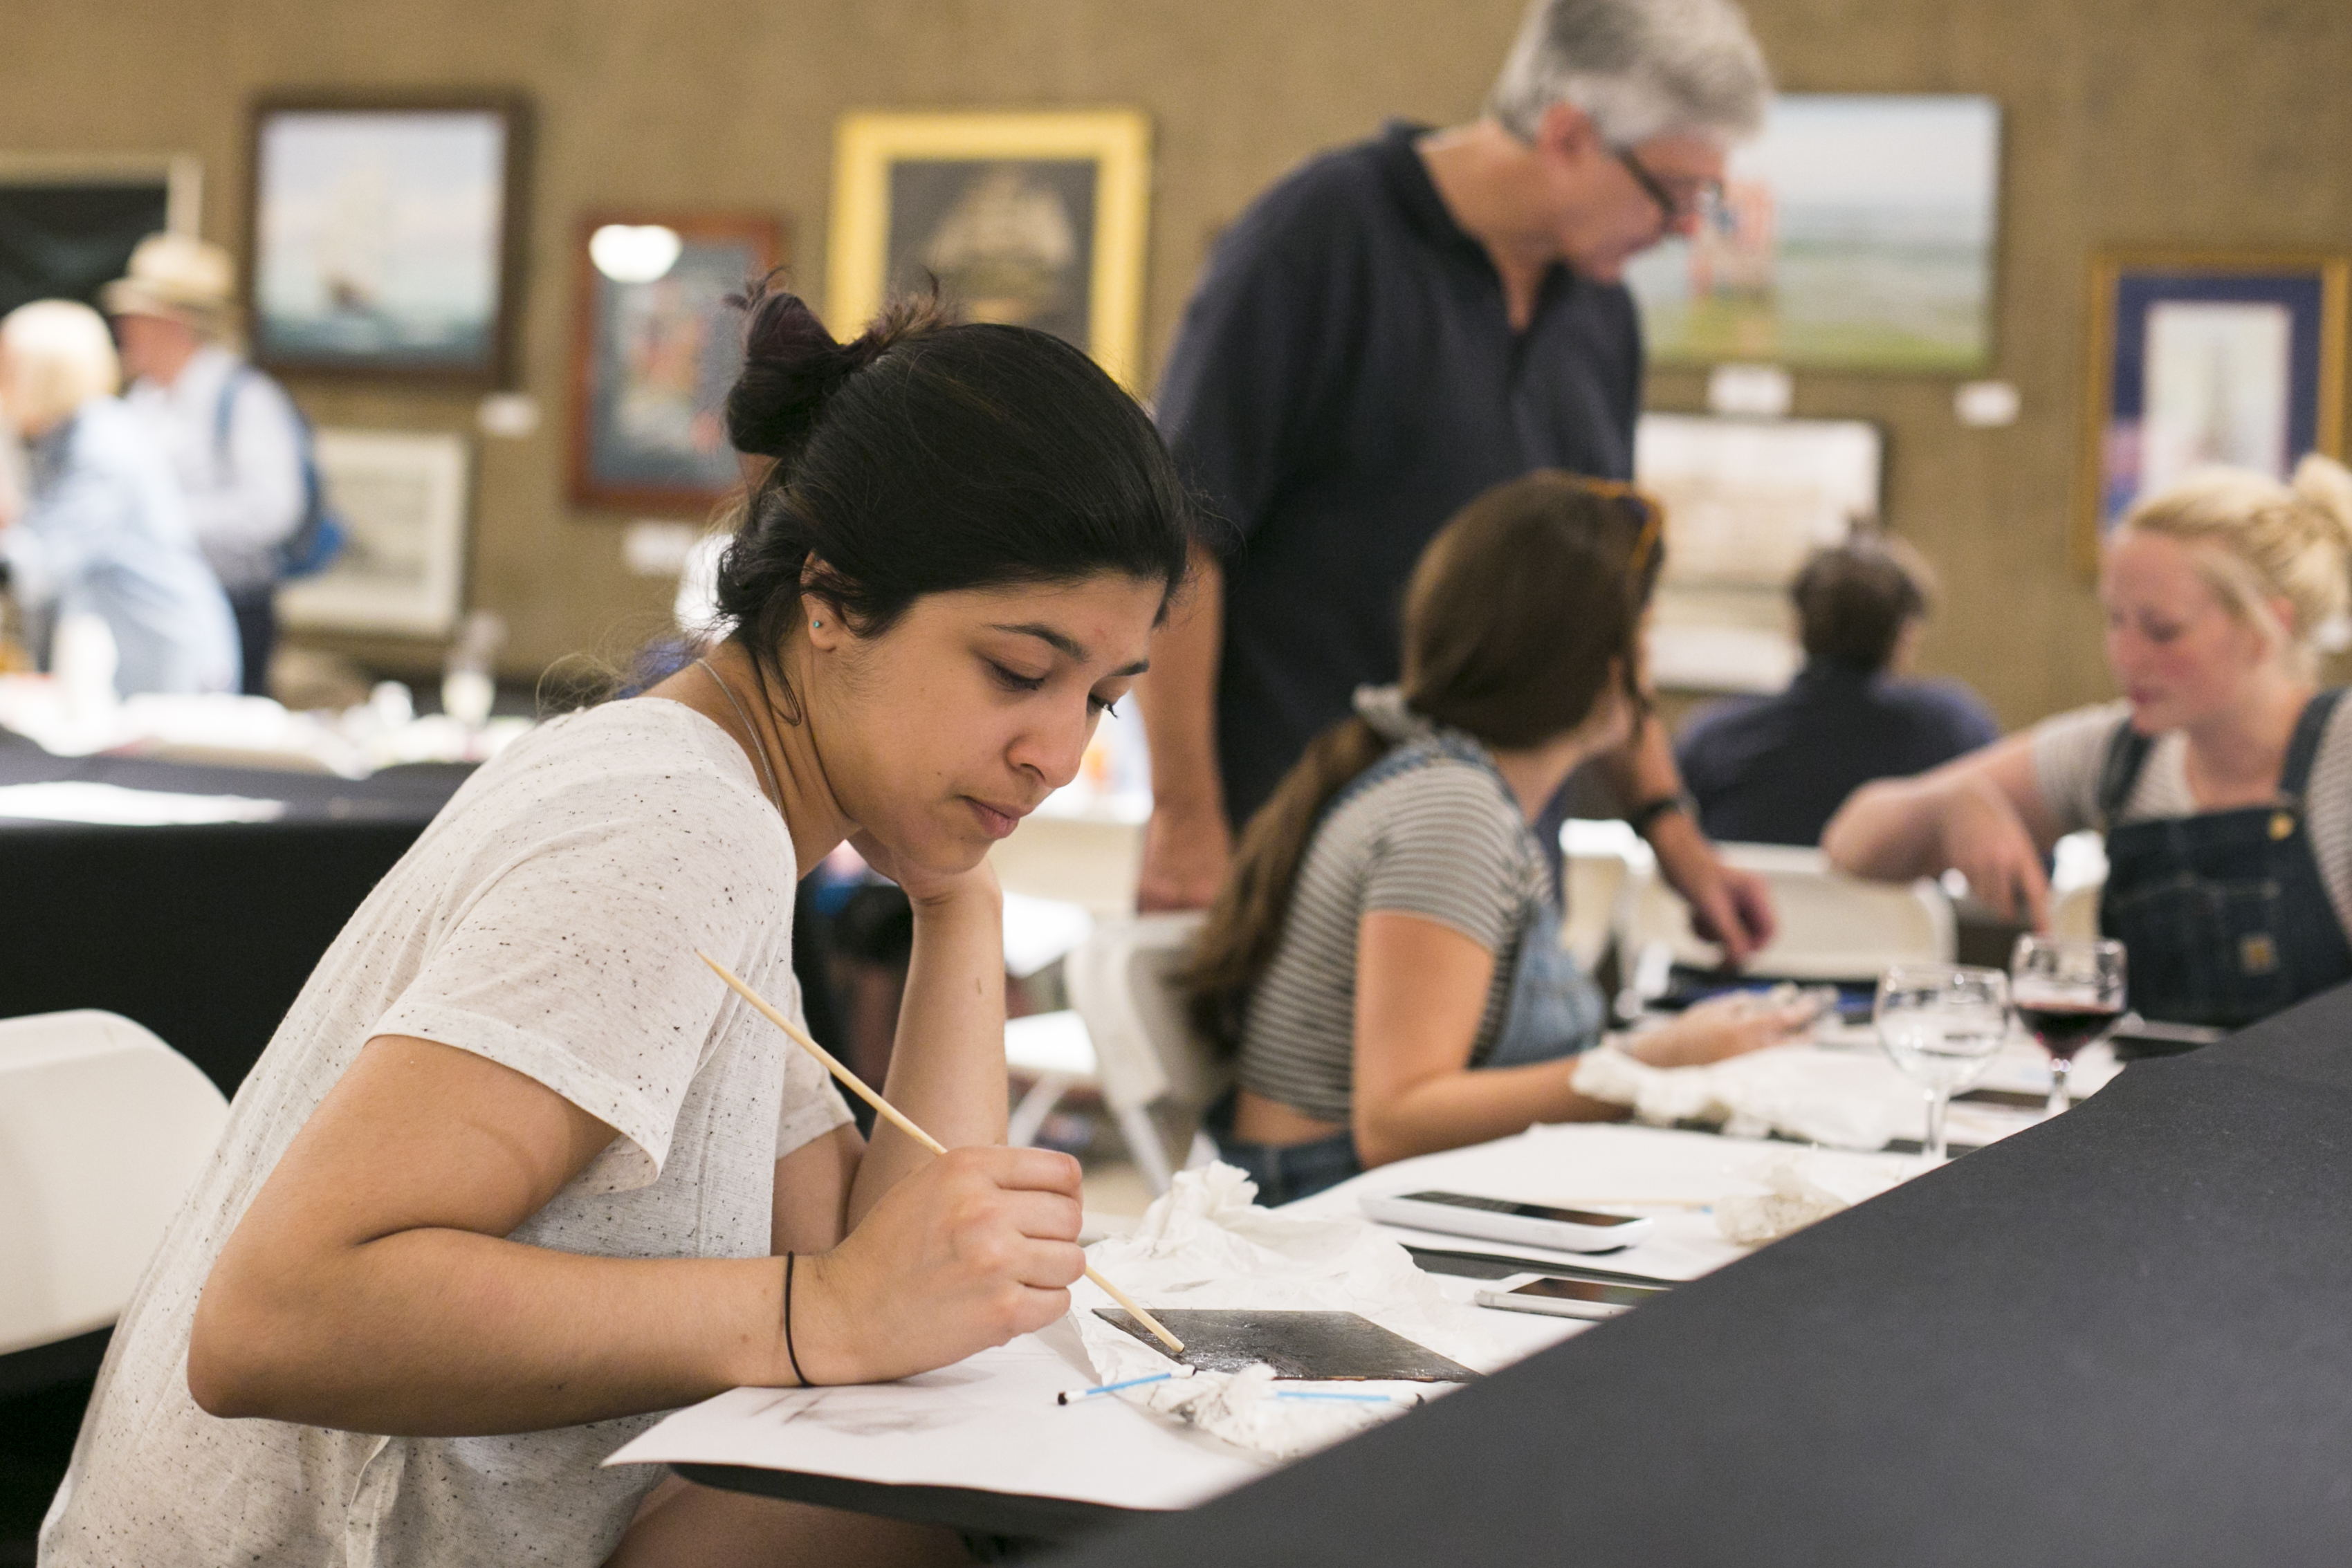 An artist from Chicago makes her first monotype at the Salmagundi Club on July 12, 2016. (Samira Bouaou/Epoch Times)